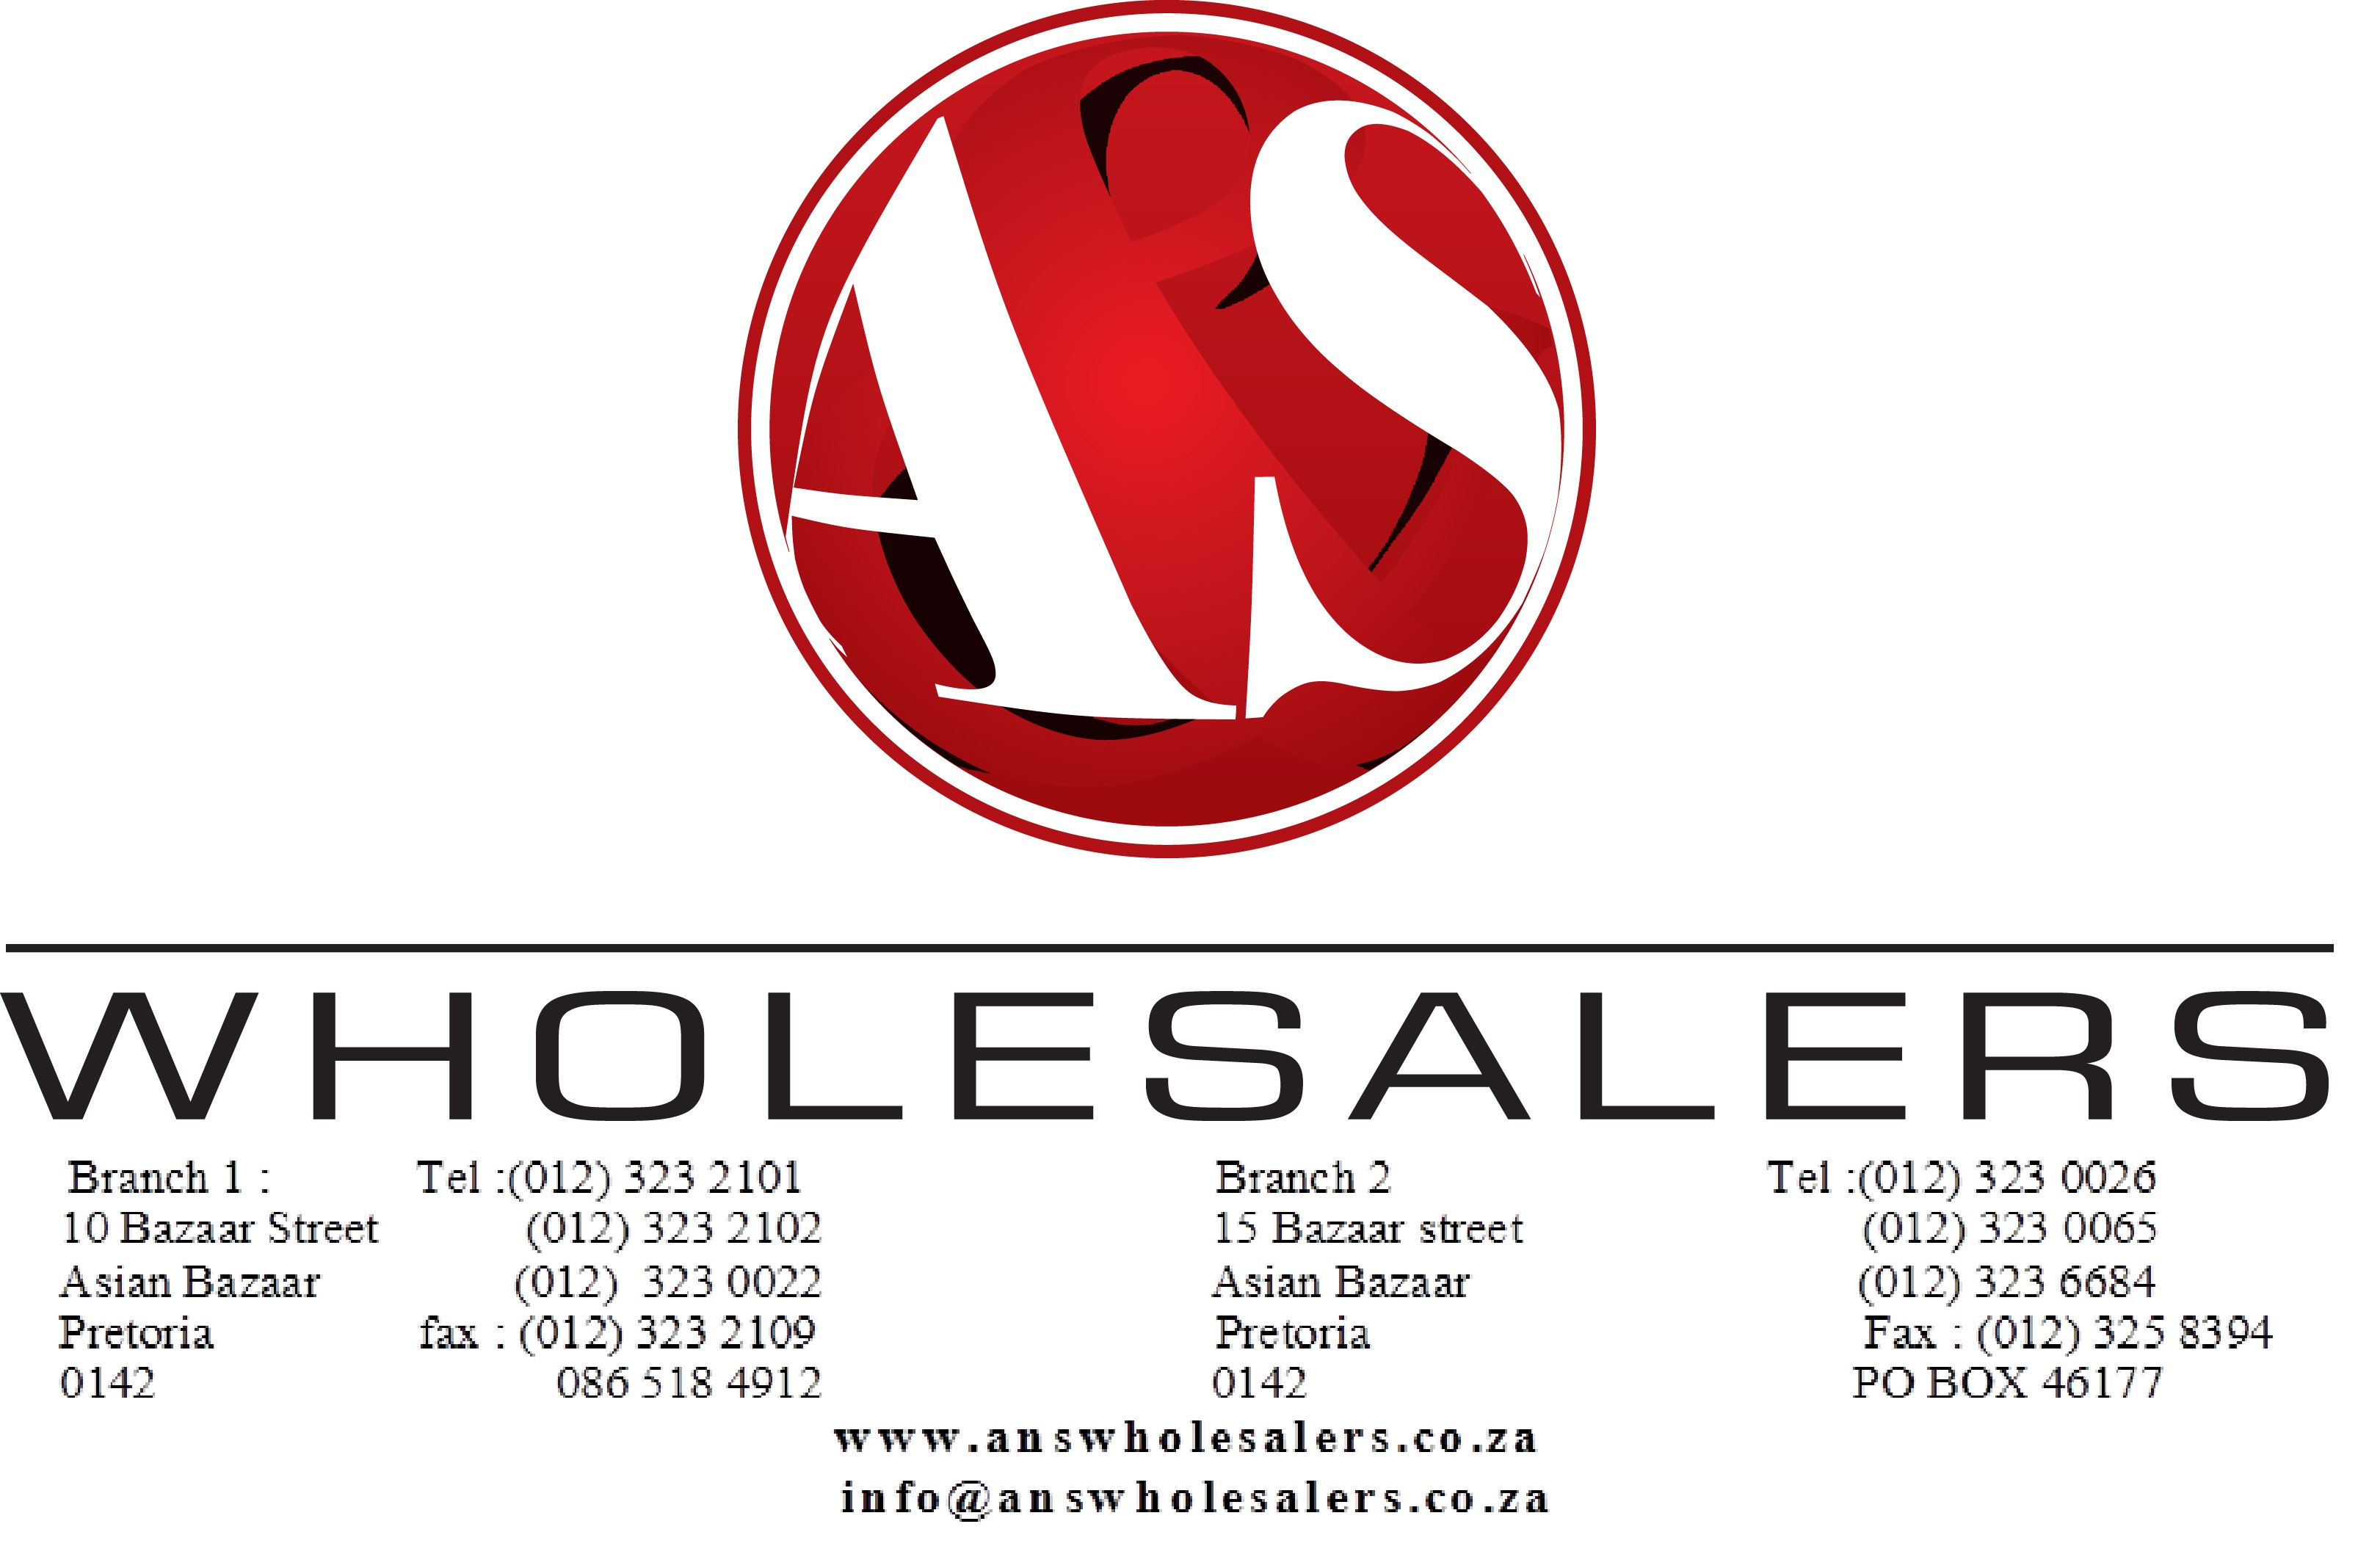 A&S Wholesalers Pretoria